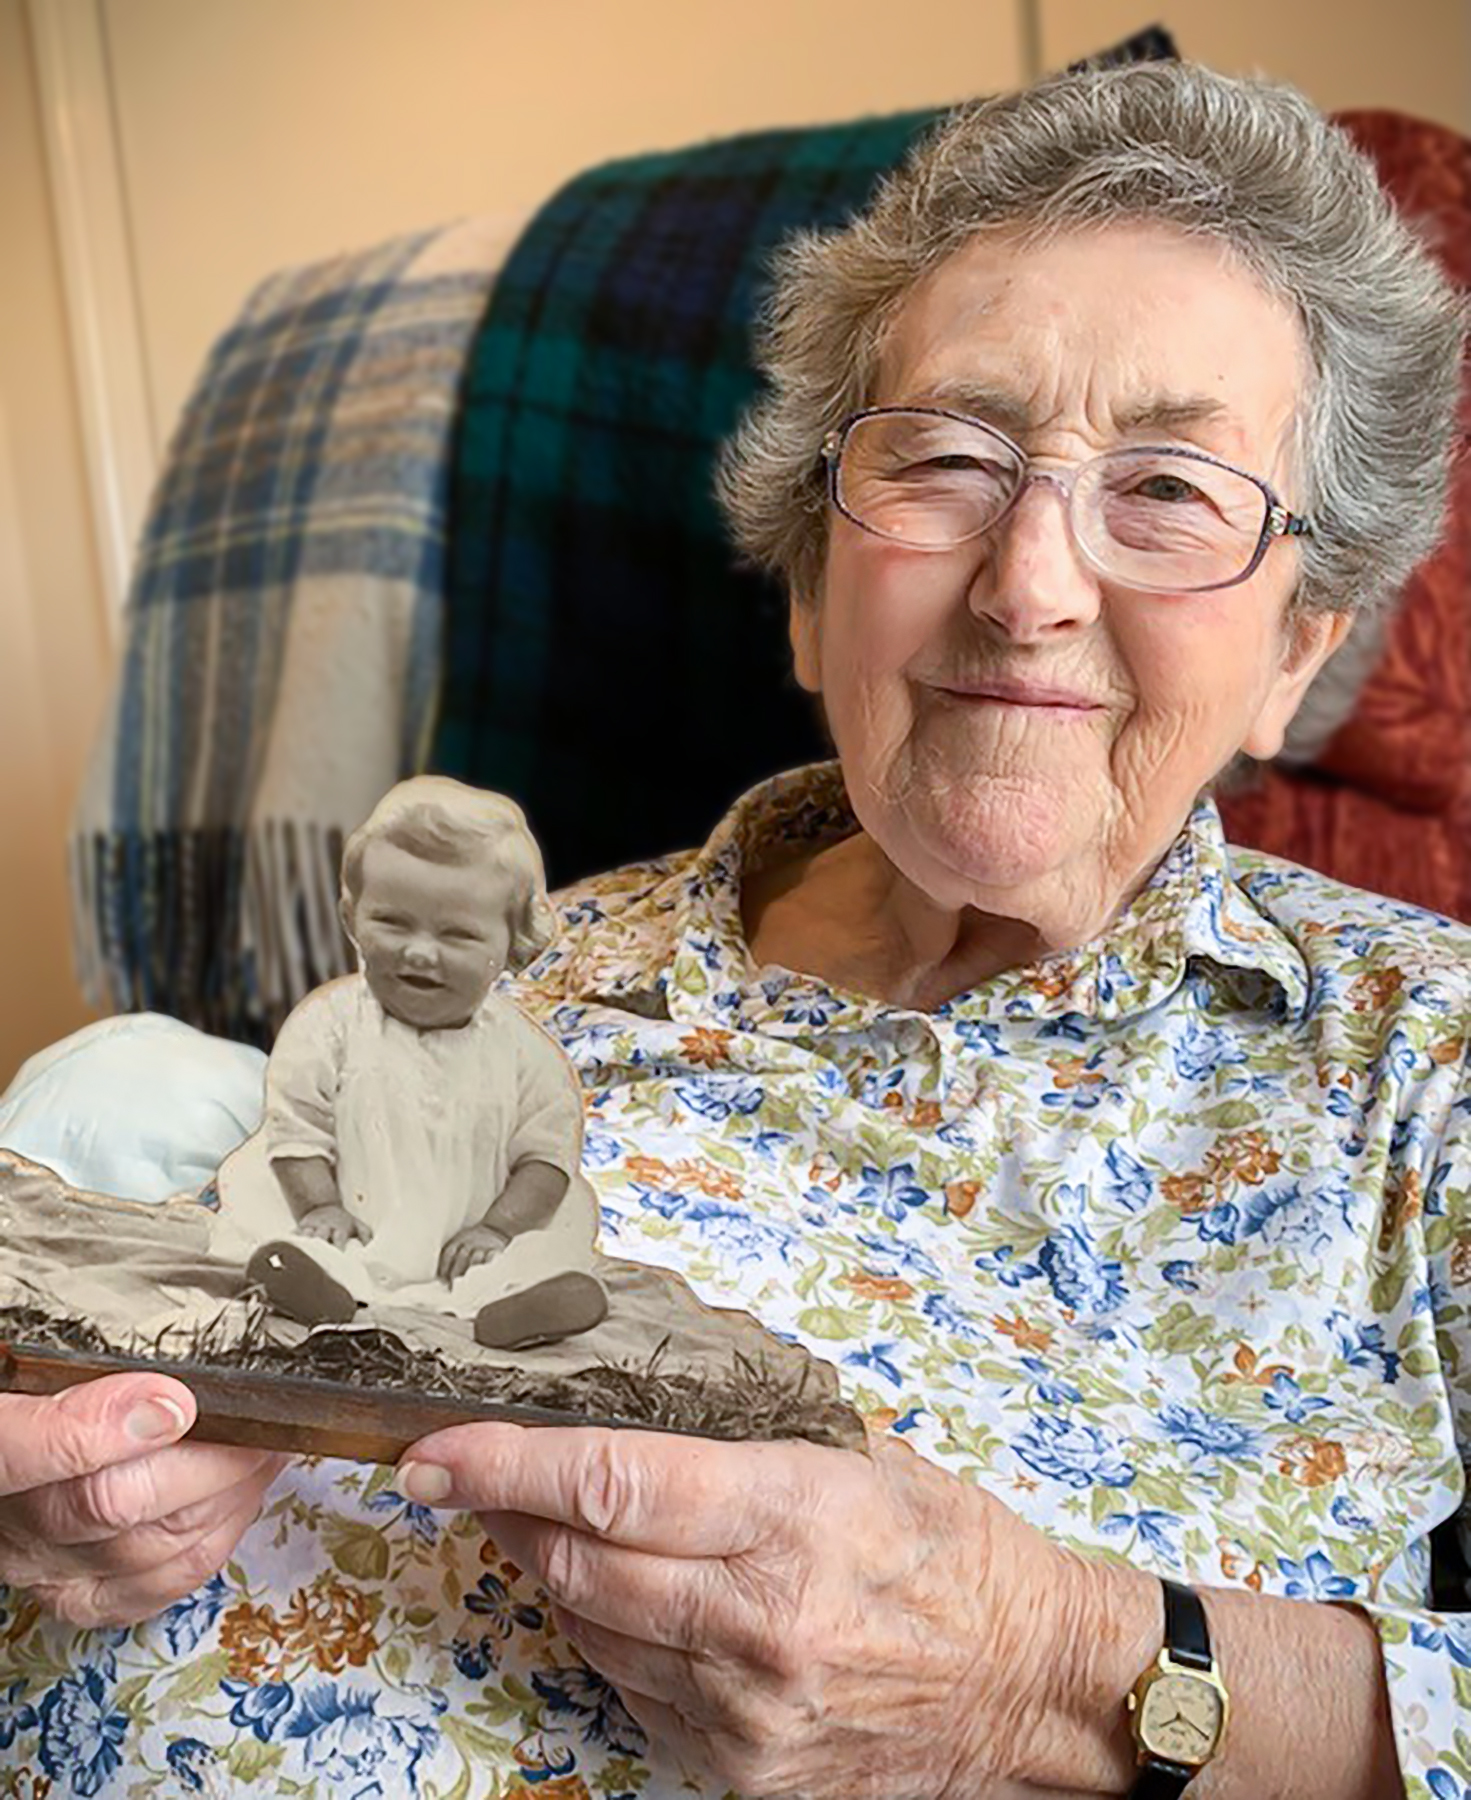 A Malvern care home resident holding a picture of herself when she was young and smiling at the camera